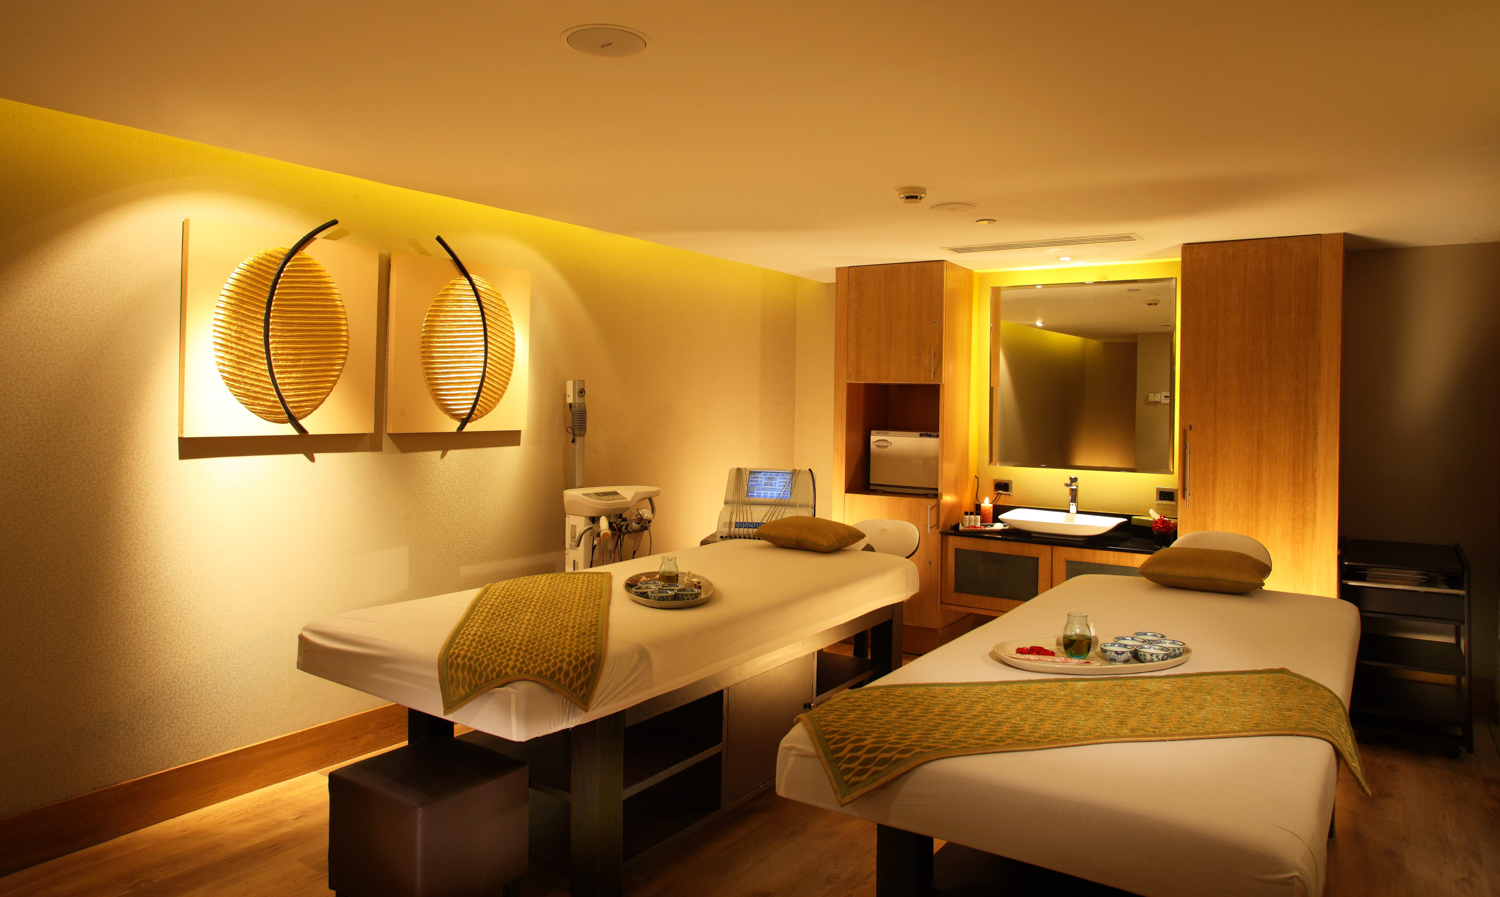 Radisson Blu Plaza Delhi Airport Hotel, R - The Spa. www.thingstodot.com.